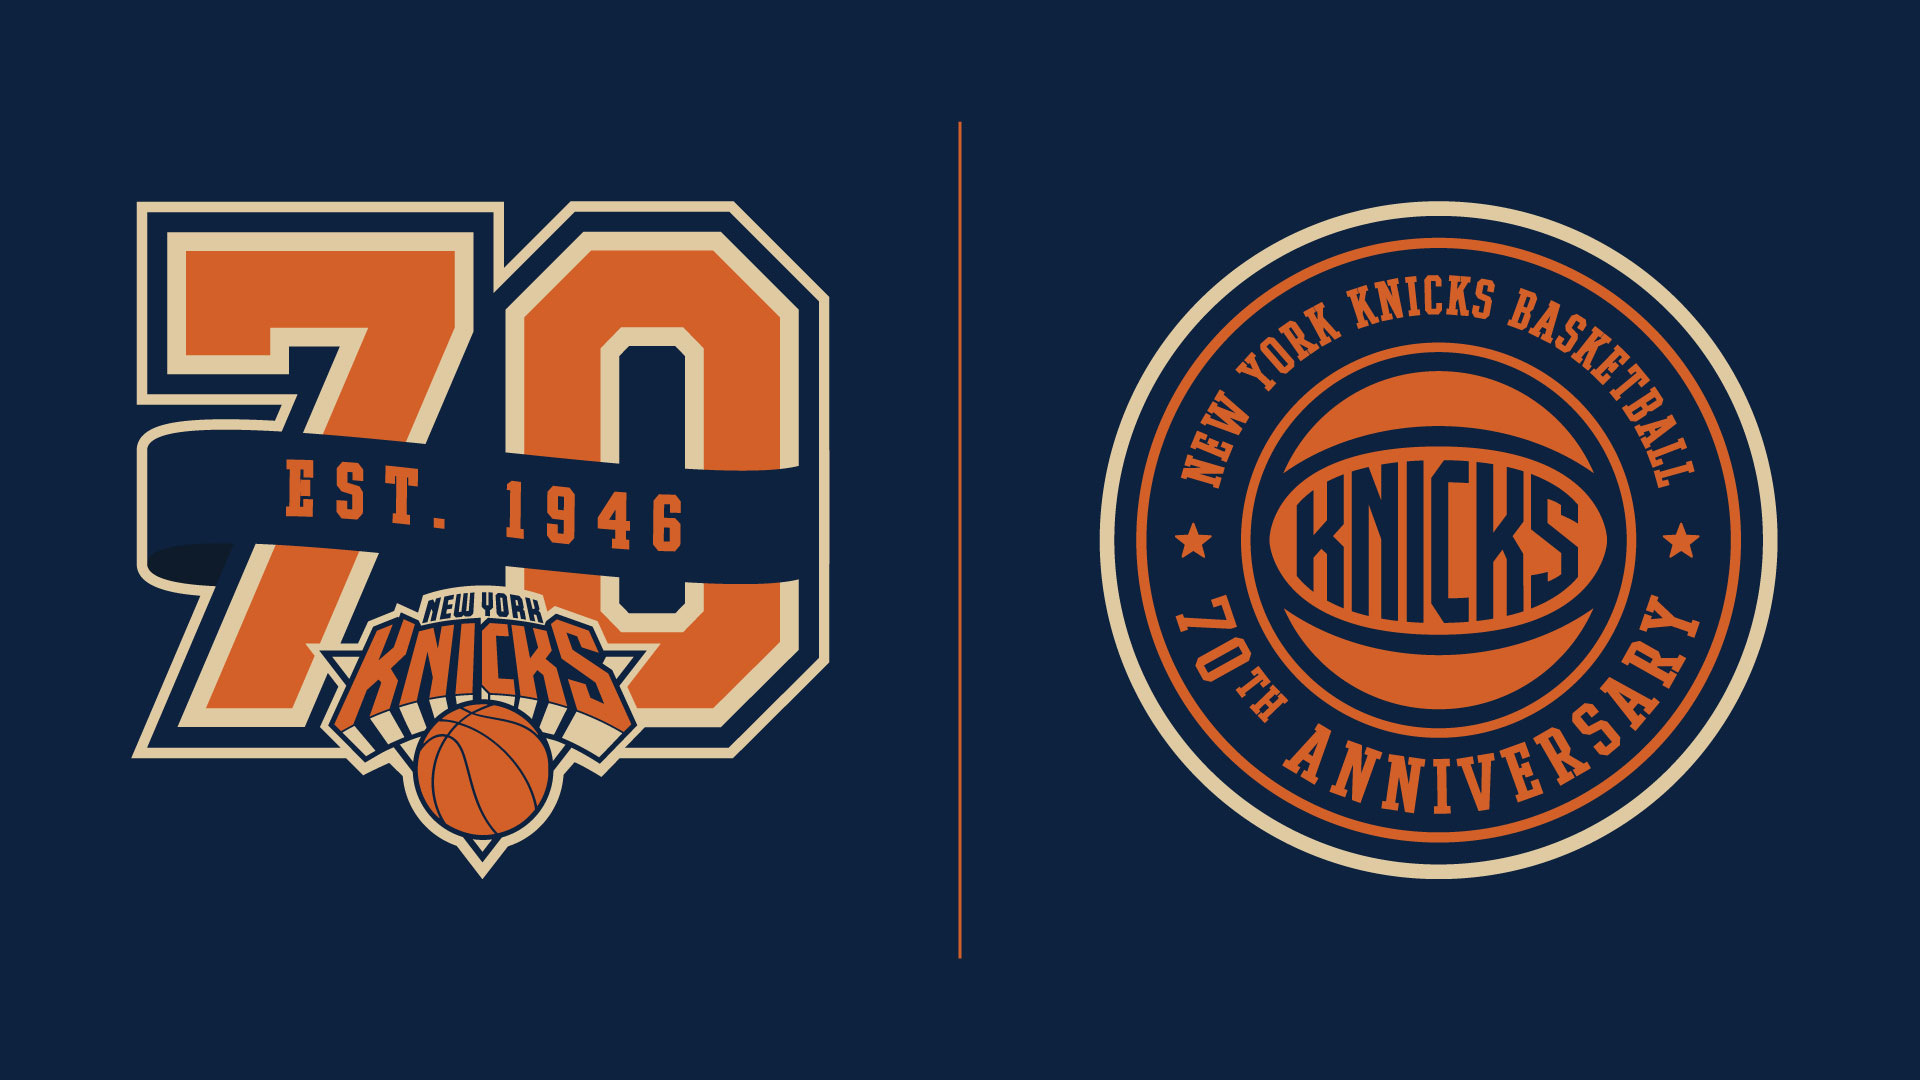 Knicks properly honor 70th anniversary with vintage inspired knicks properly honor 70th anniversary with vintage inspired branding campaign nba sporting news altavistaventures Image collections